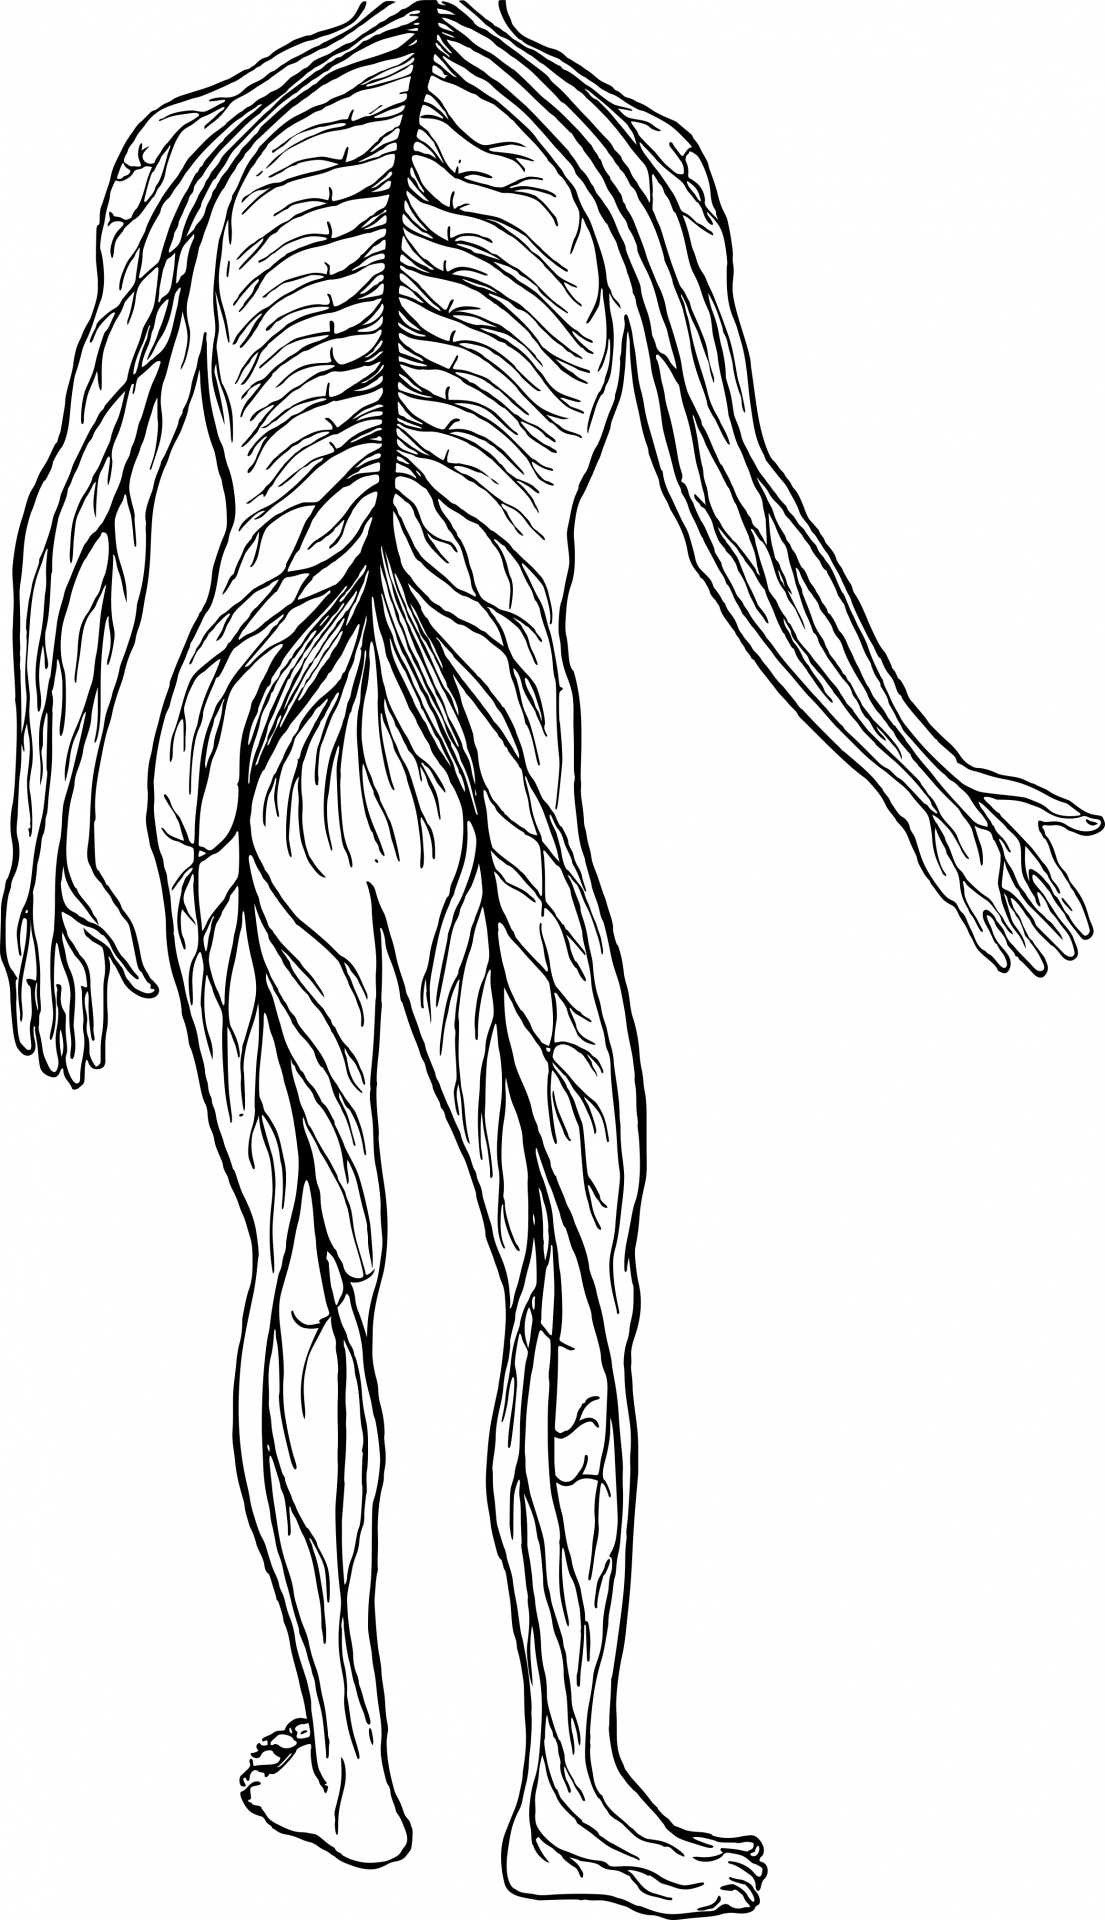 Free Nervous System Cliparts, Download Free Clip Art, Free